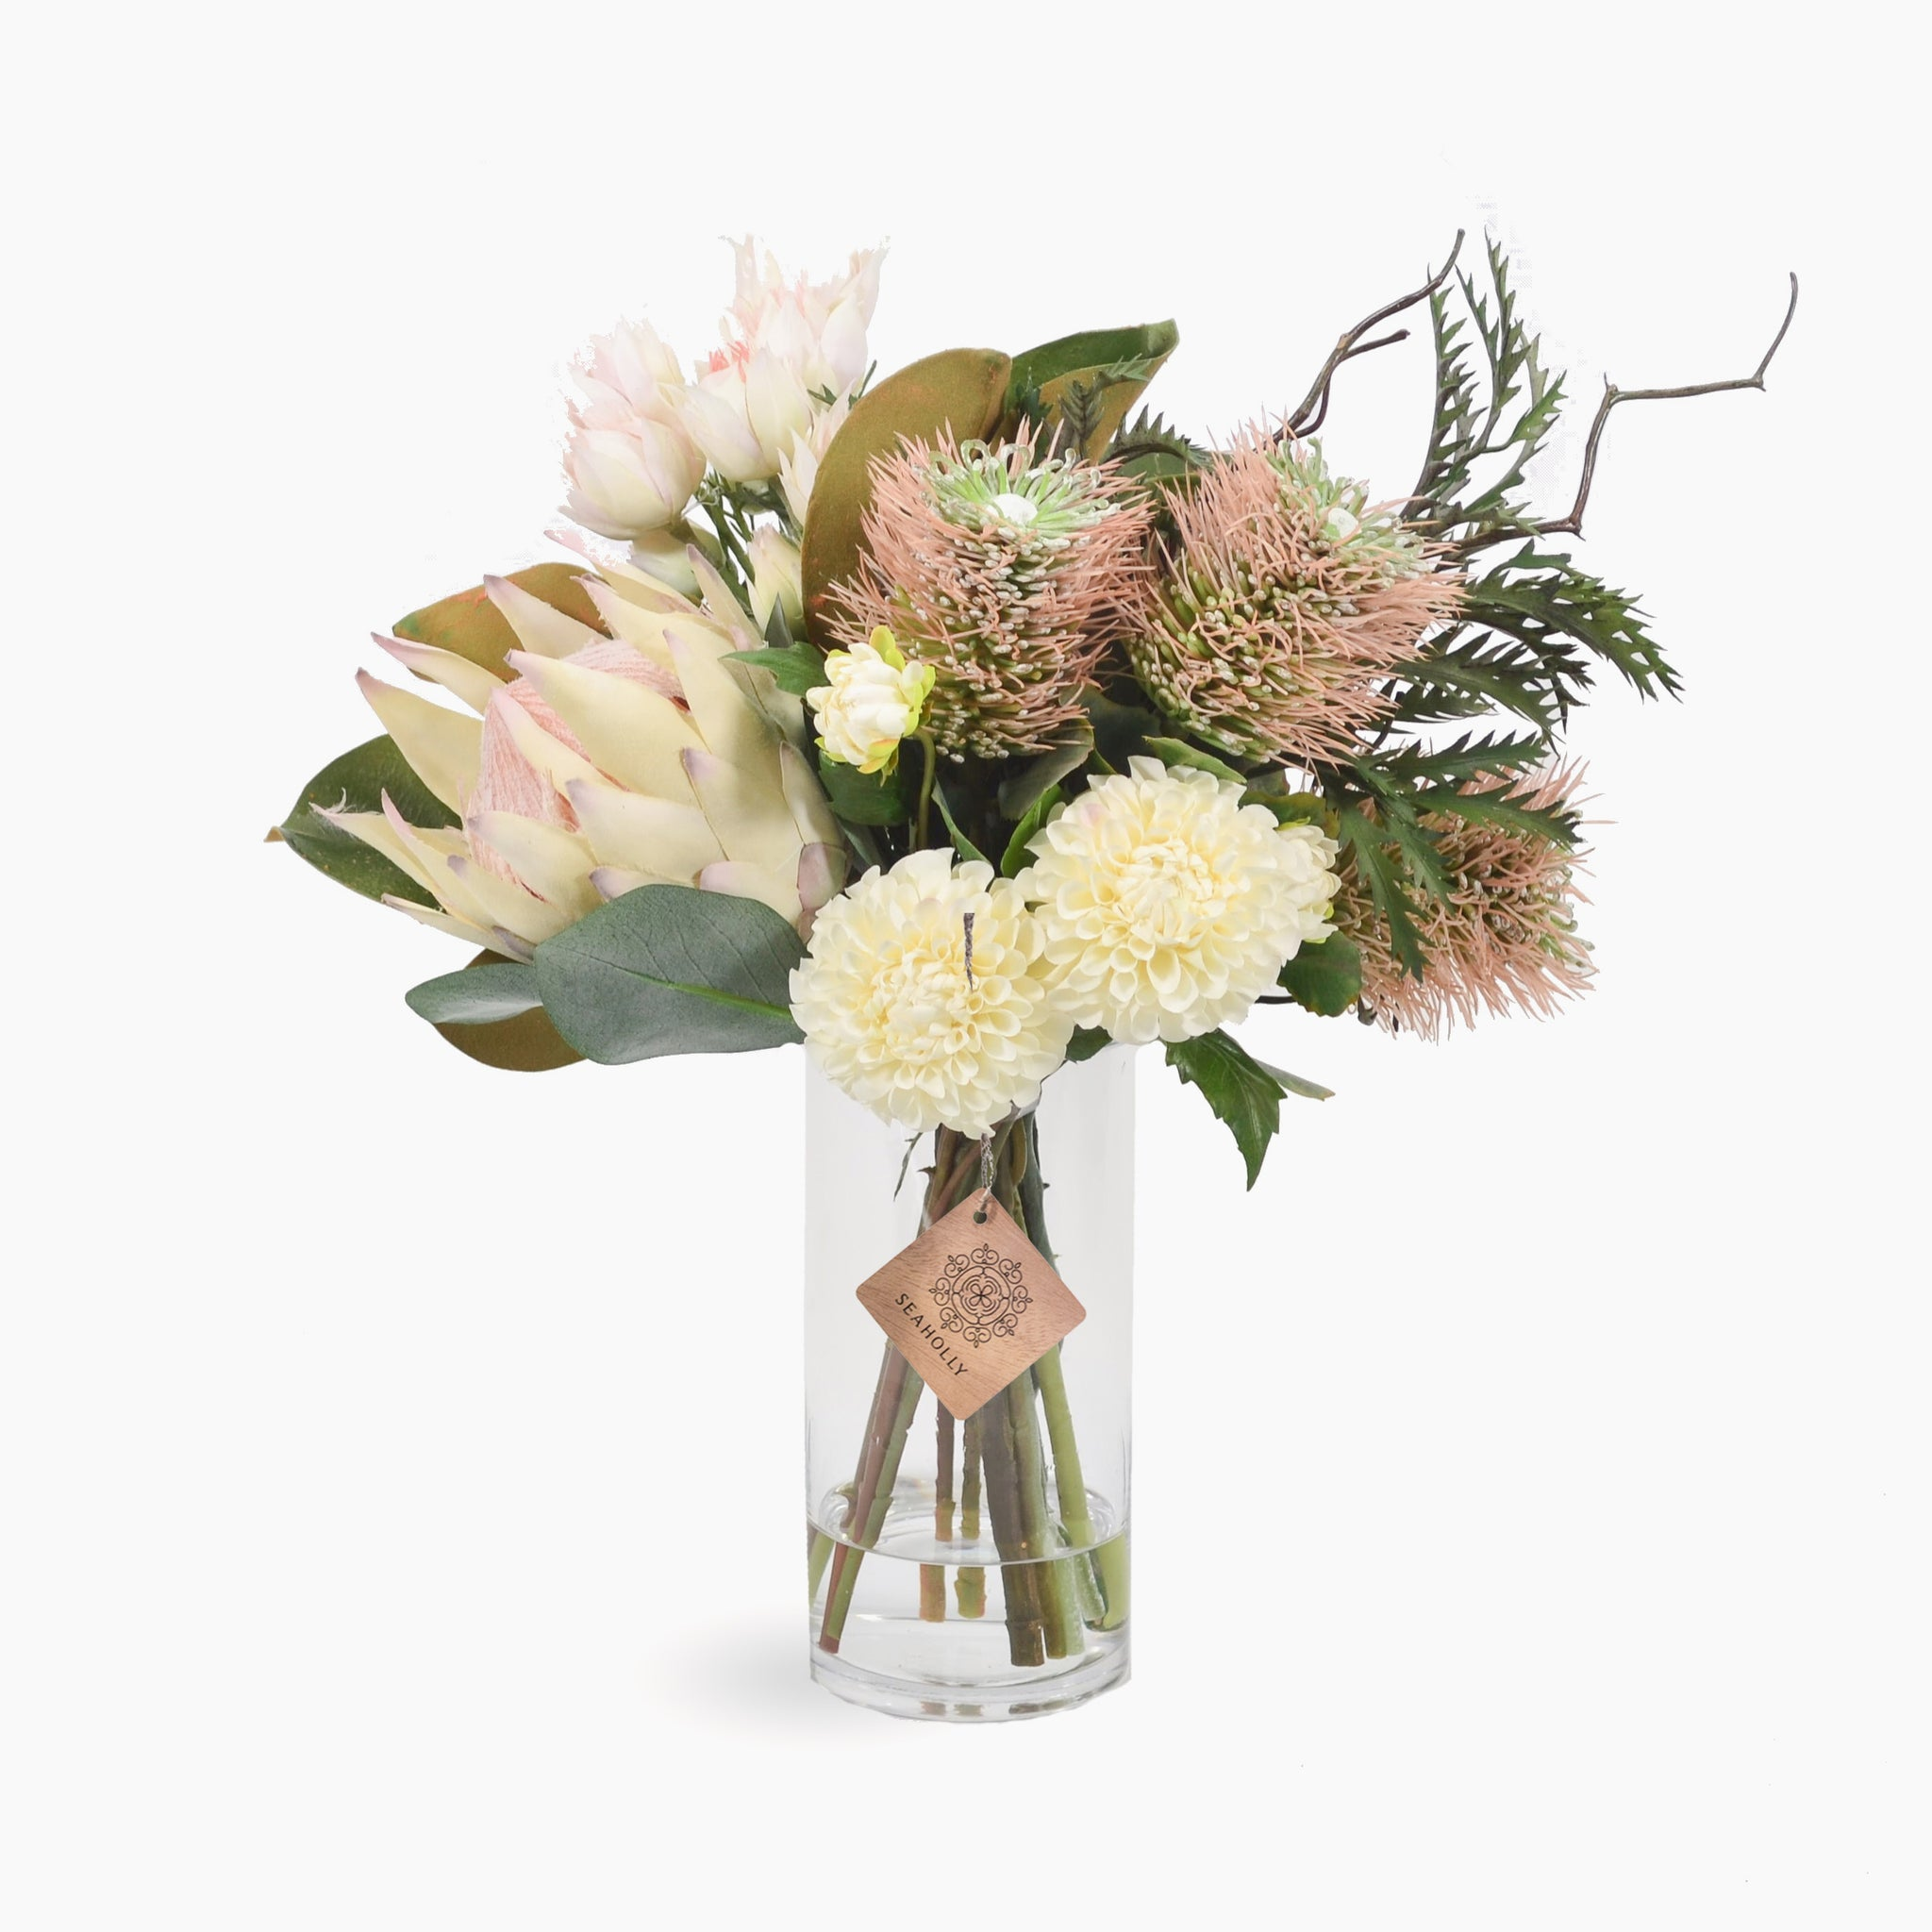 Cream protea, leucospermum and blushing brides with dahlia